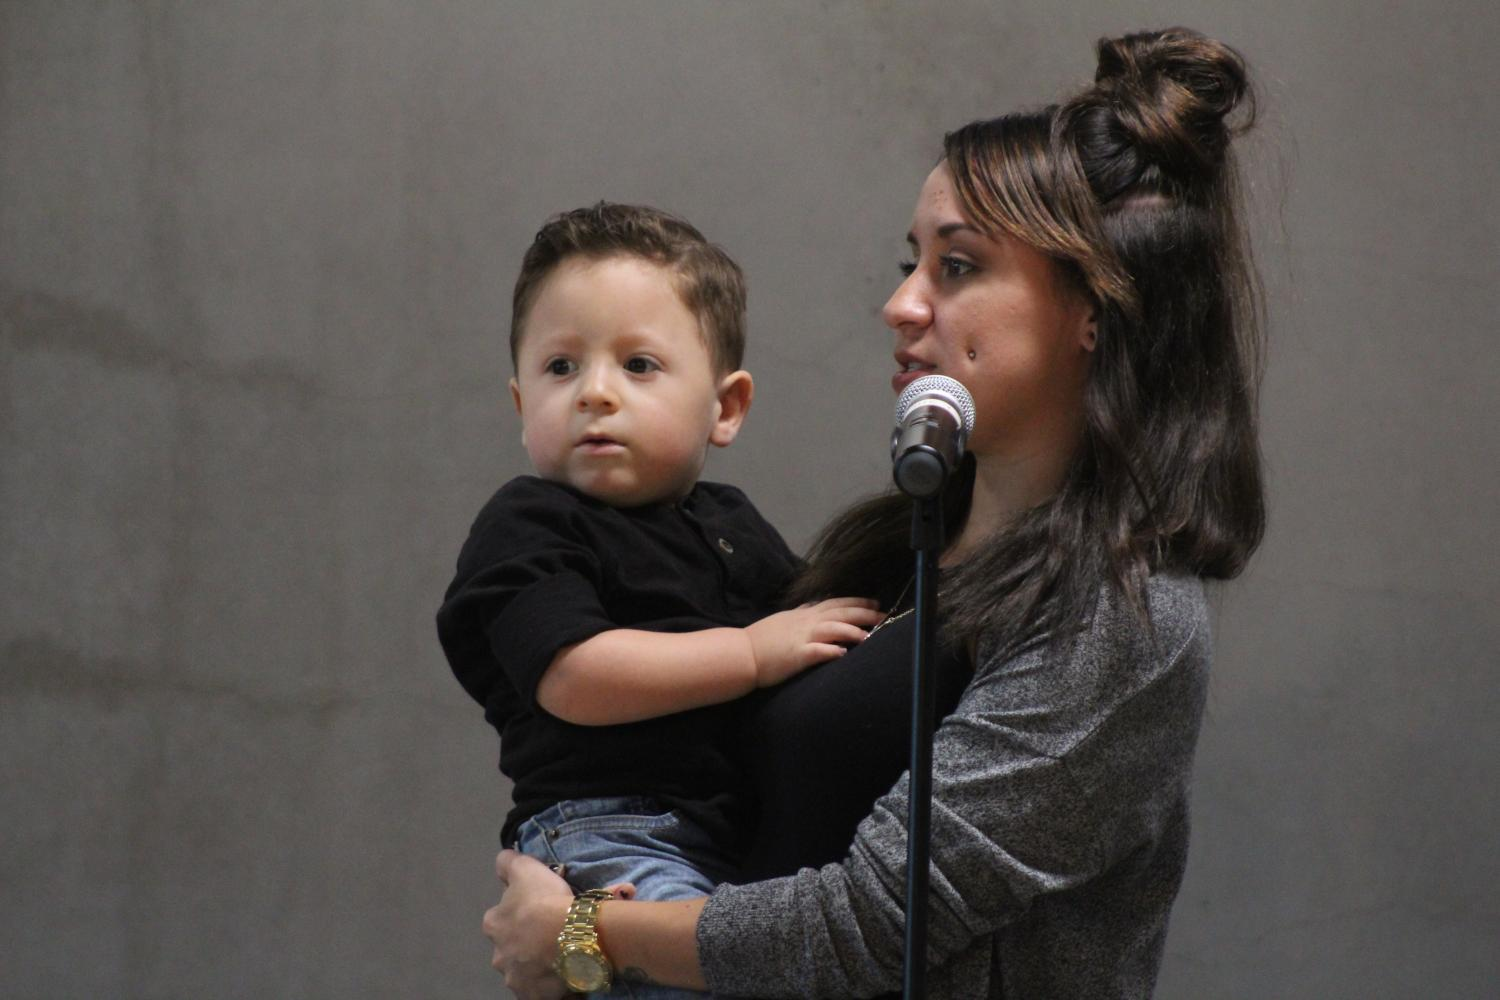 Lisette Leyba's son Ezra was diagnosed with Prader-Willi syndrome, a condition characterized by weak muscle tone, feeding difficulties and delayed development.